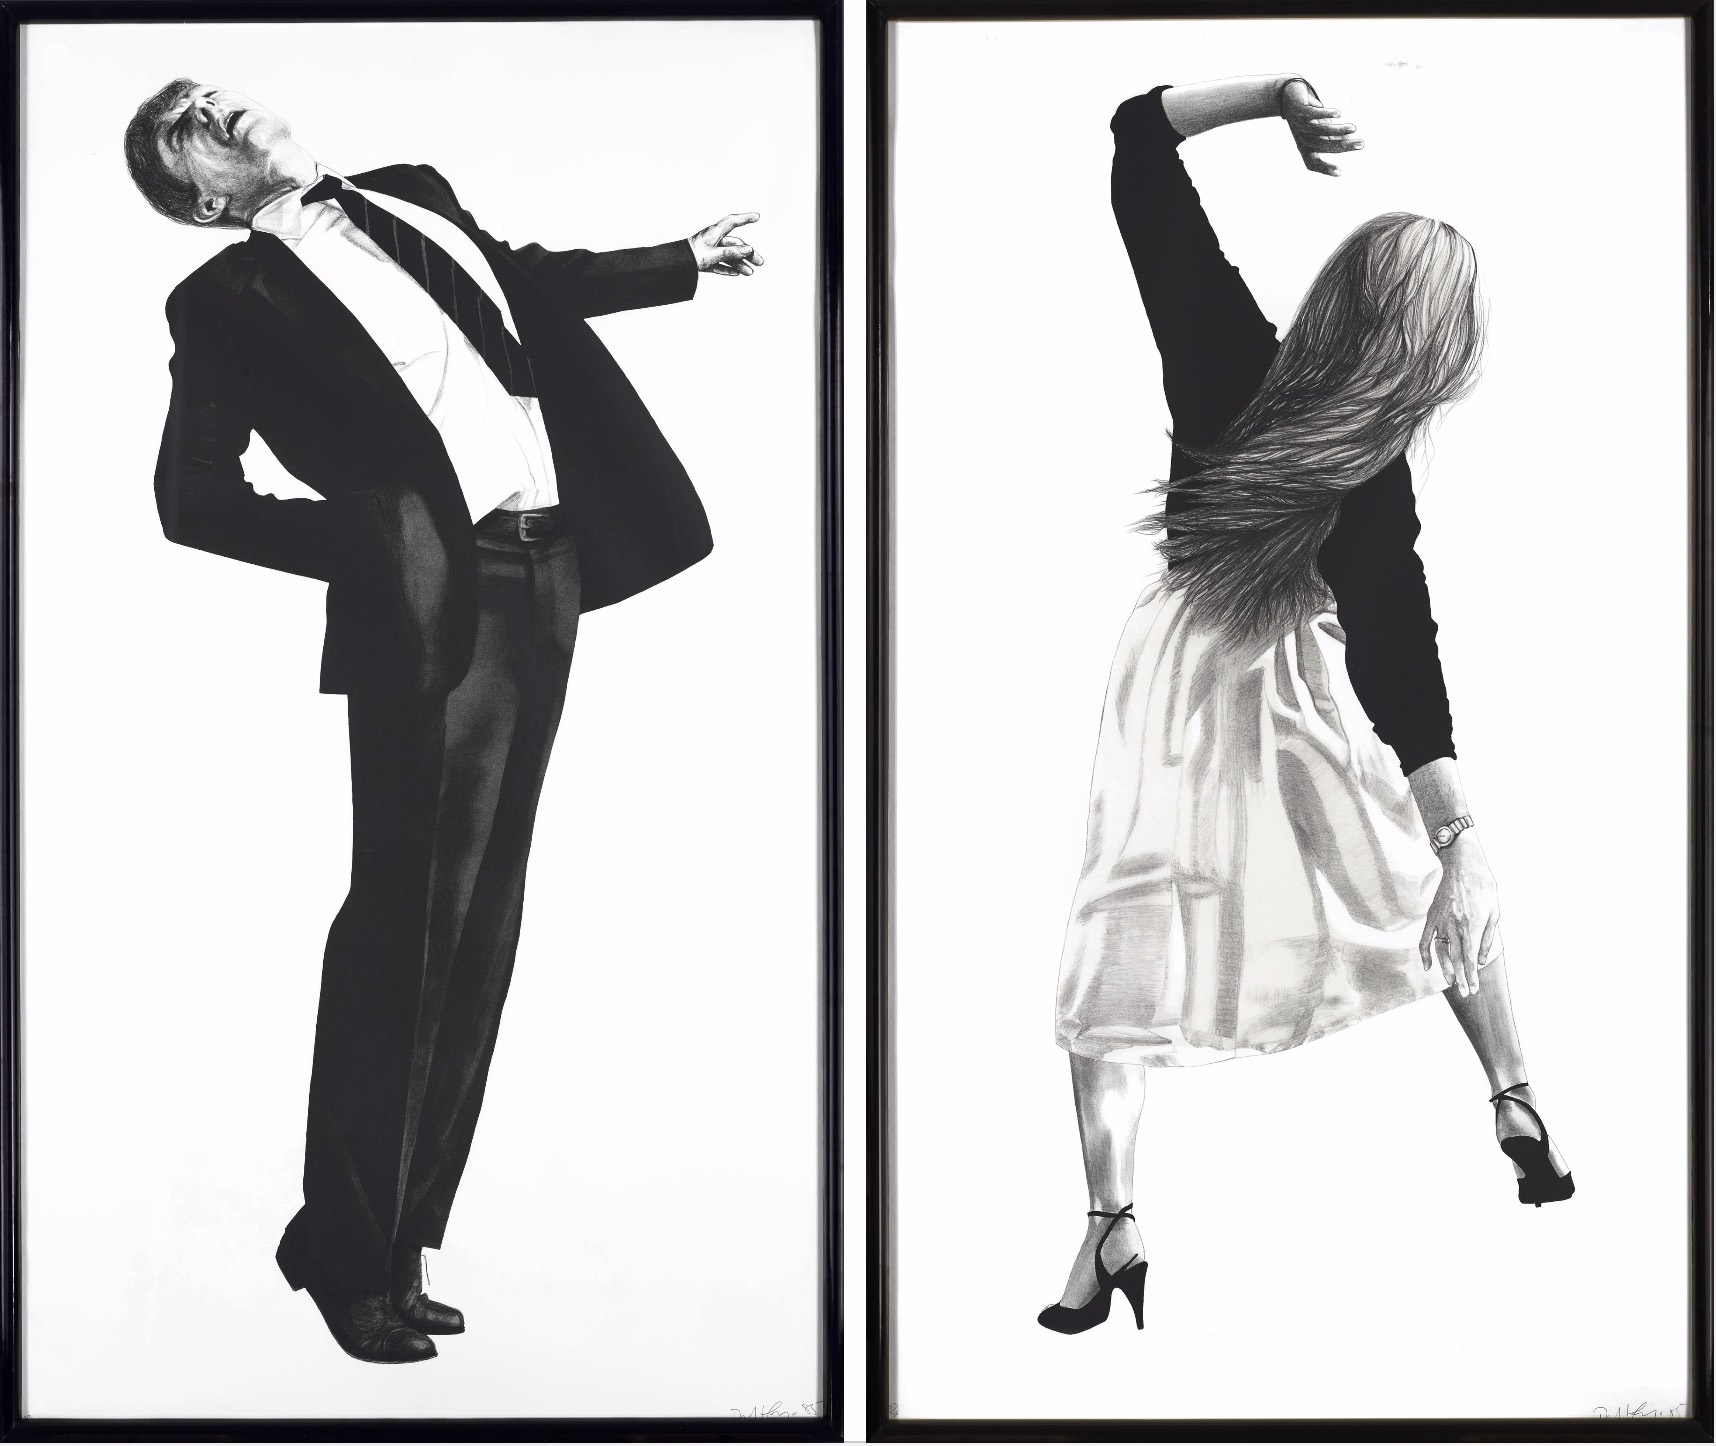 Anne & Edmund, 1985 by Robert Longo